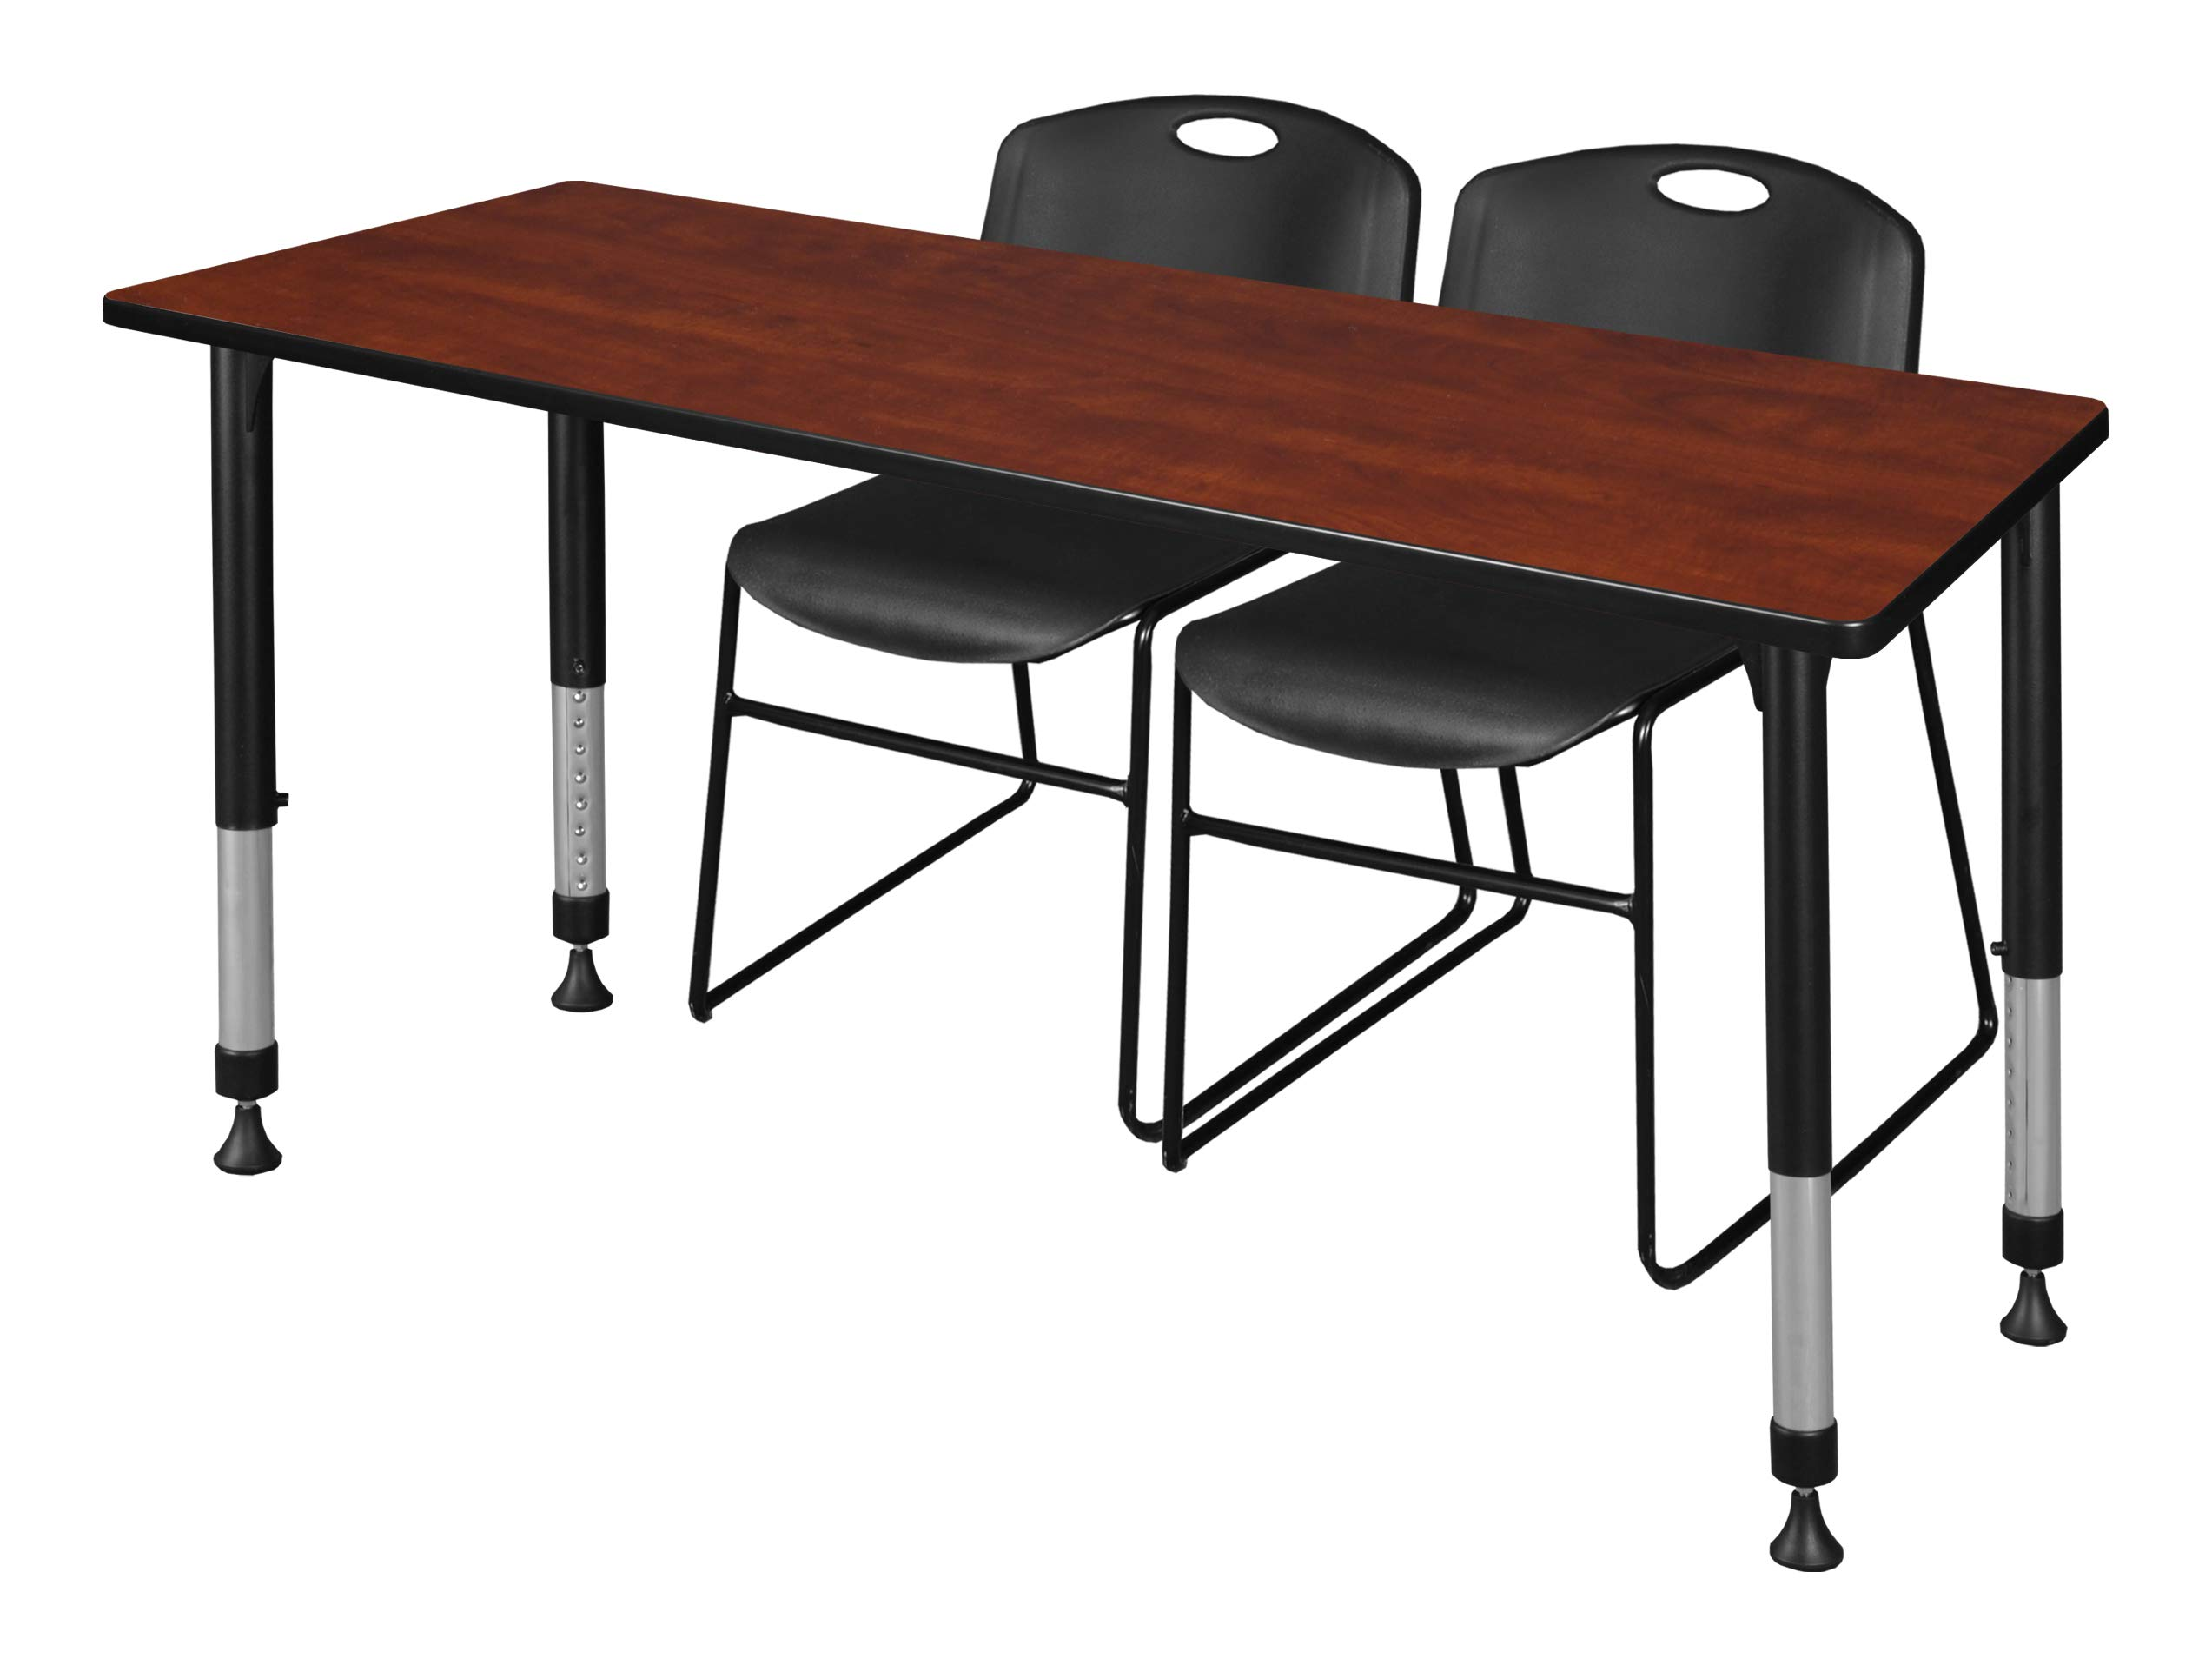 Regency MT6630CHAPBK44BK Kee Height Adjustable Classroom Table Set with Two Zeng Chairs 66'' x 30'' Cherry/Black